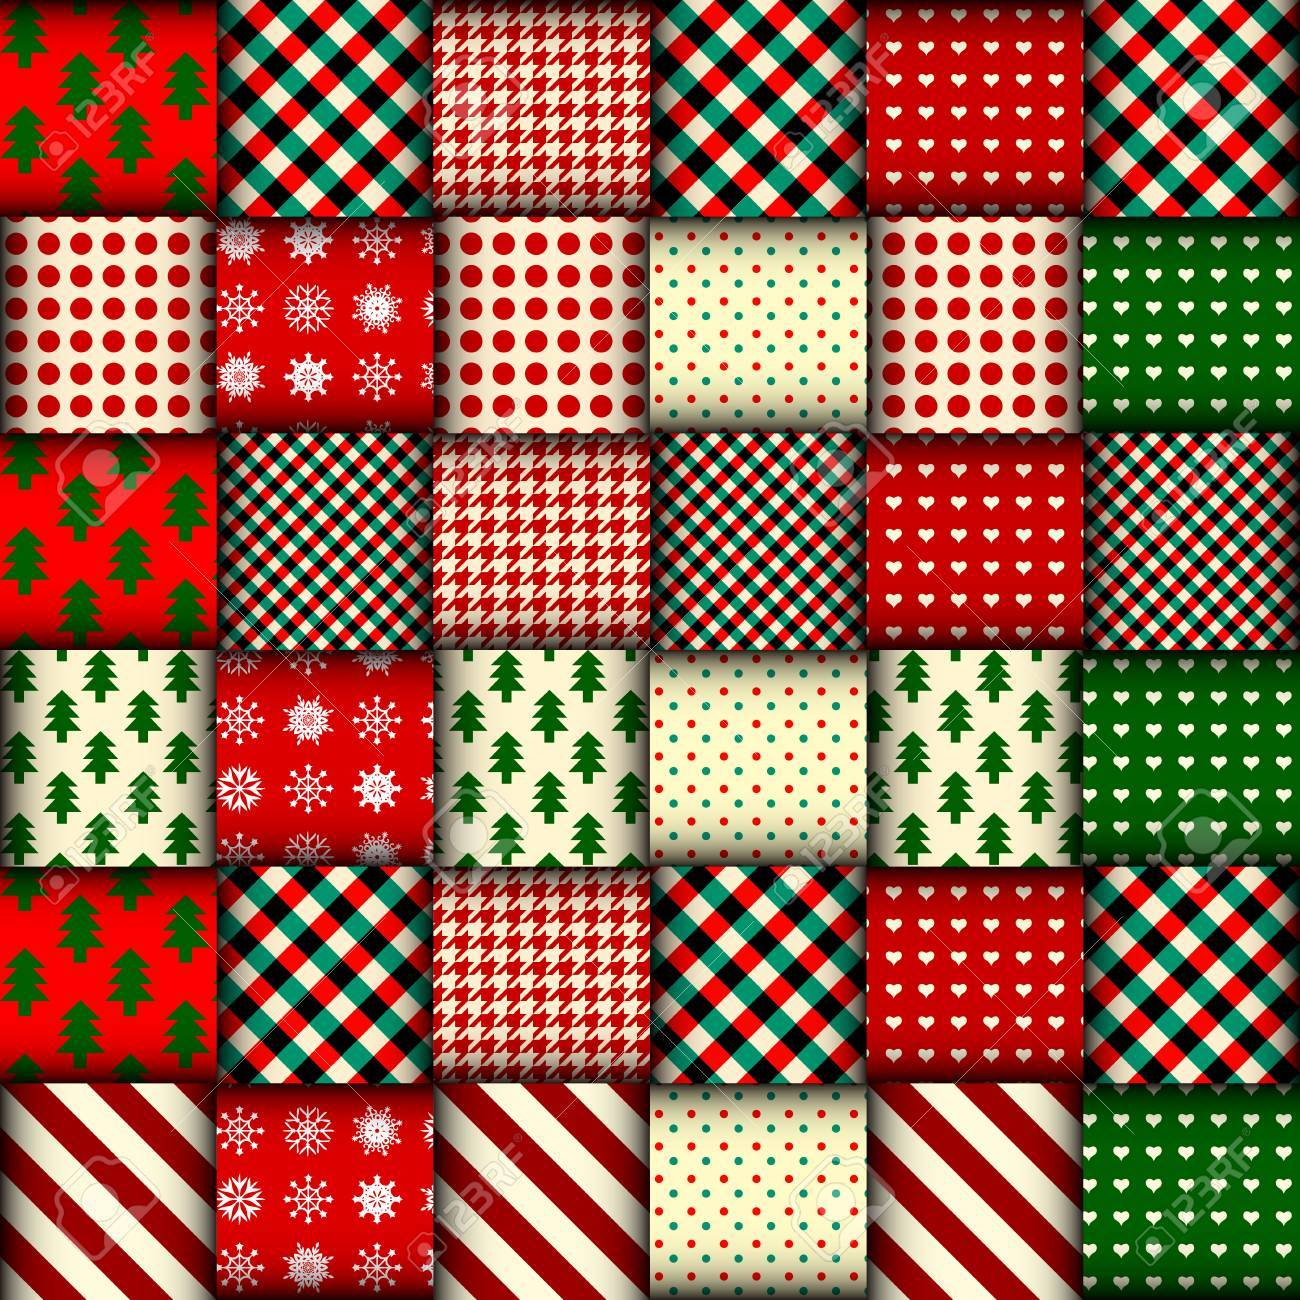 Seamless Christmas background in patchwork style. Interweaving ribbons with Christmas patterns on red background. - 87566218